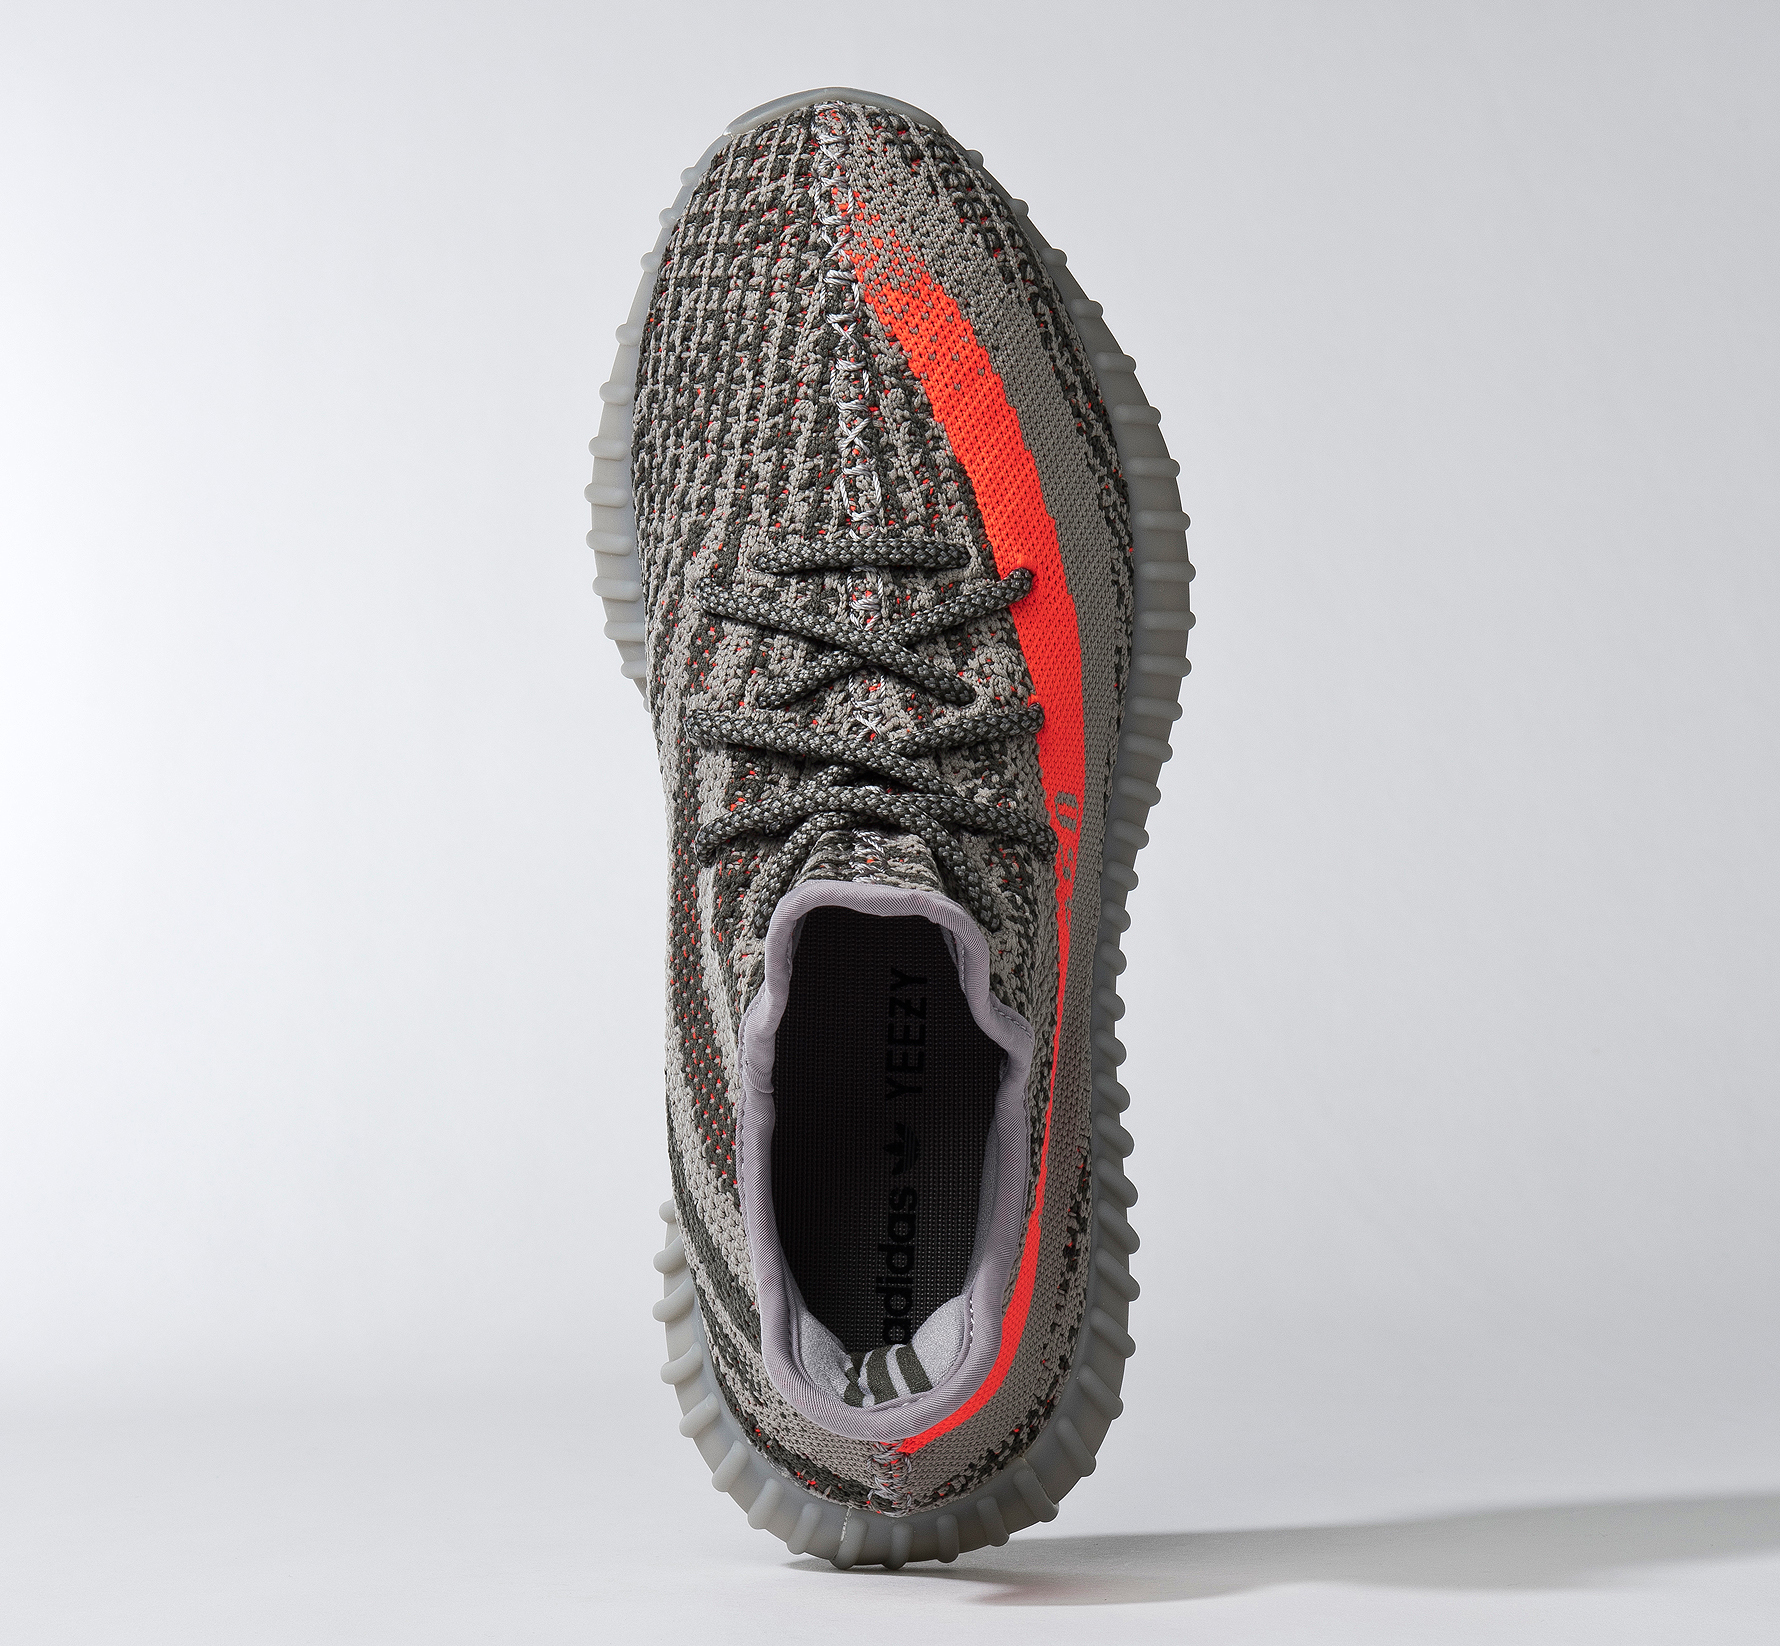 Cheap Yeezy boost 350 v2 green price uk High Tops